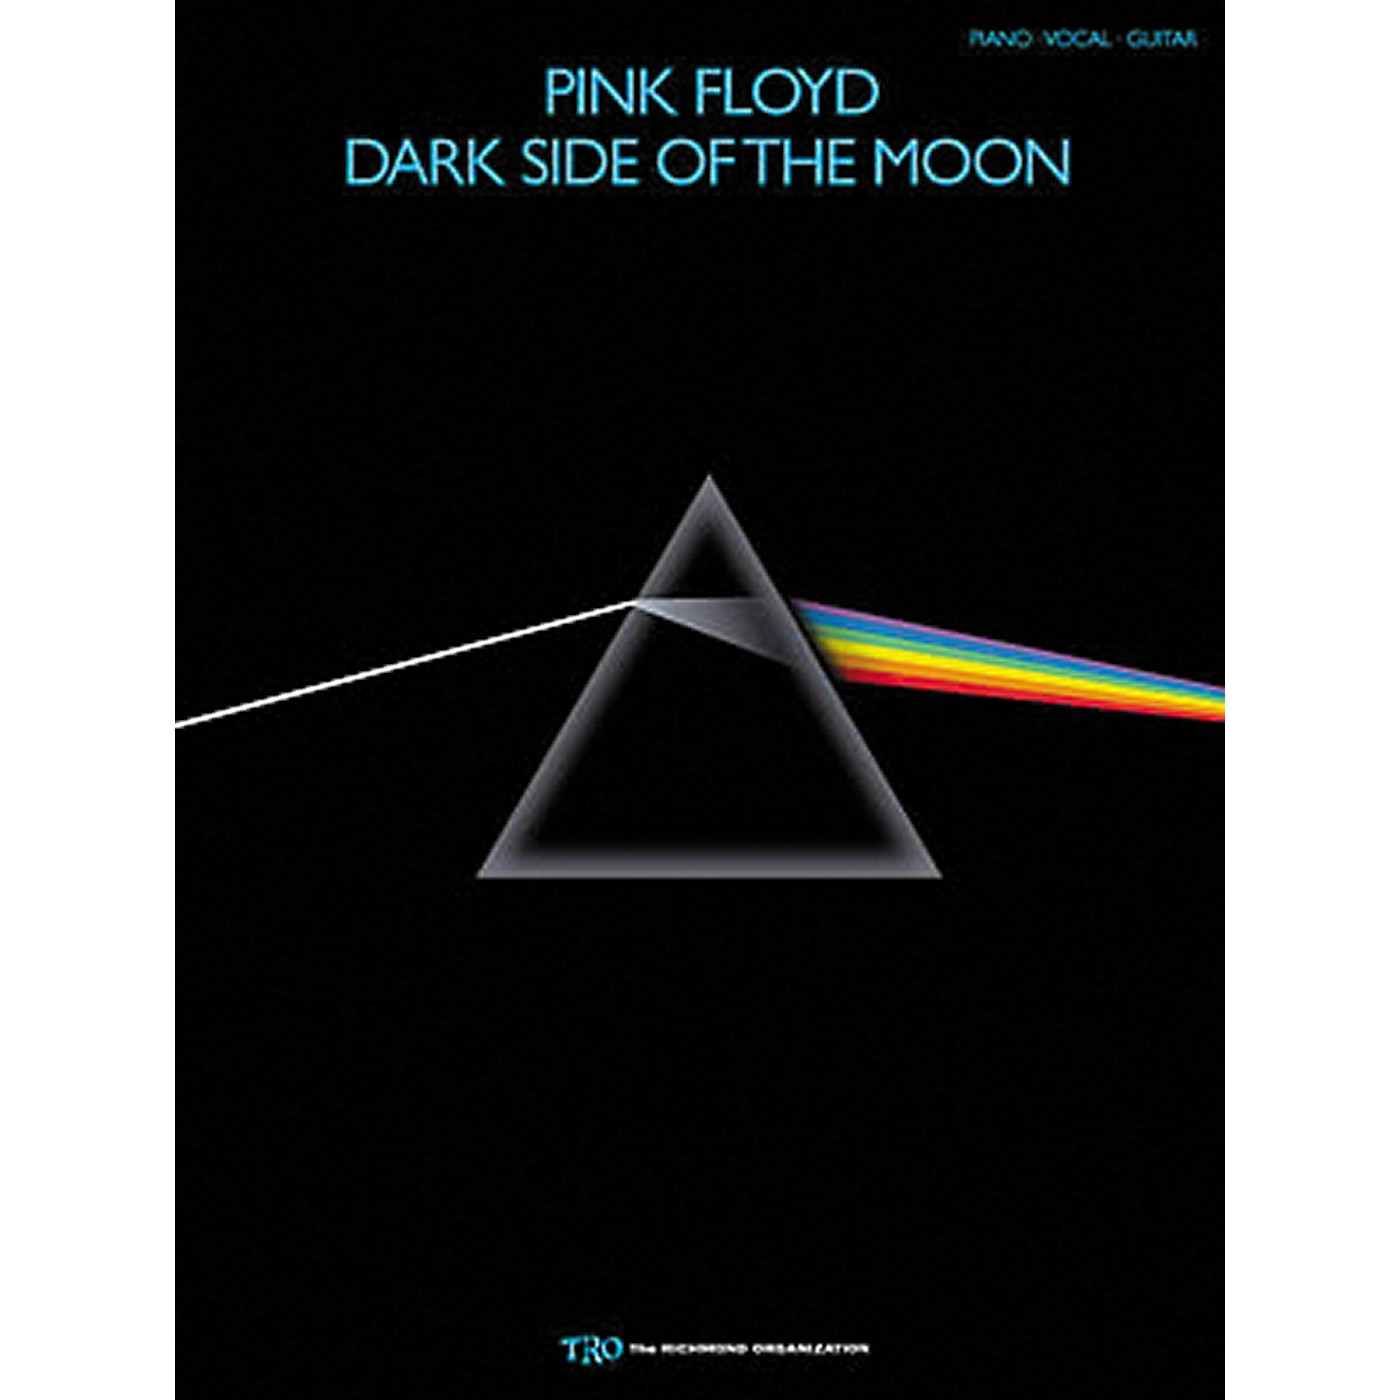 Hal Leonard Pink Floyd - Dark Side of the Moon Piano, Vocal, Guitar Songbook thumbnail